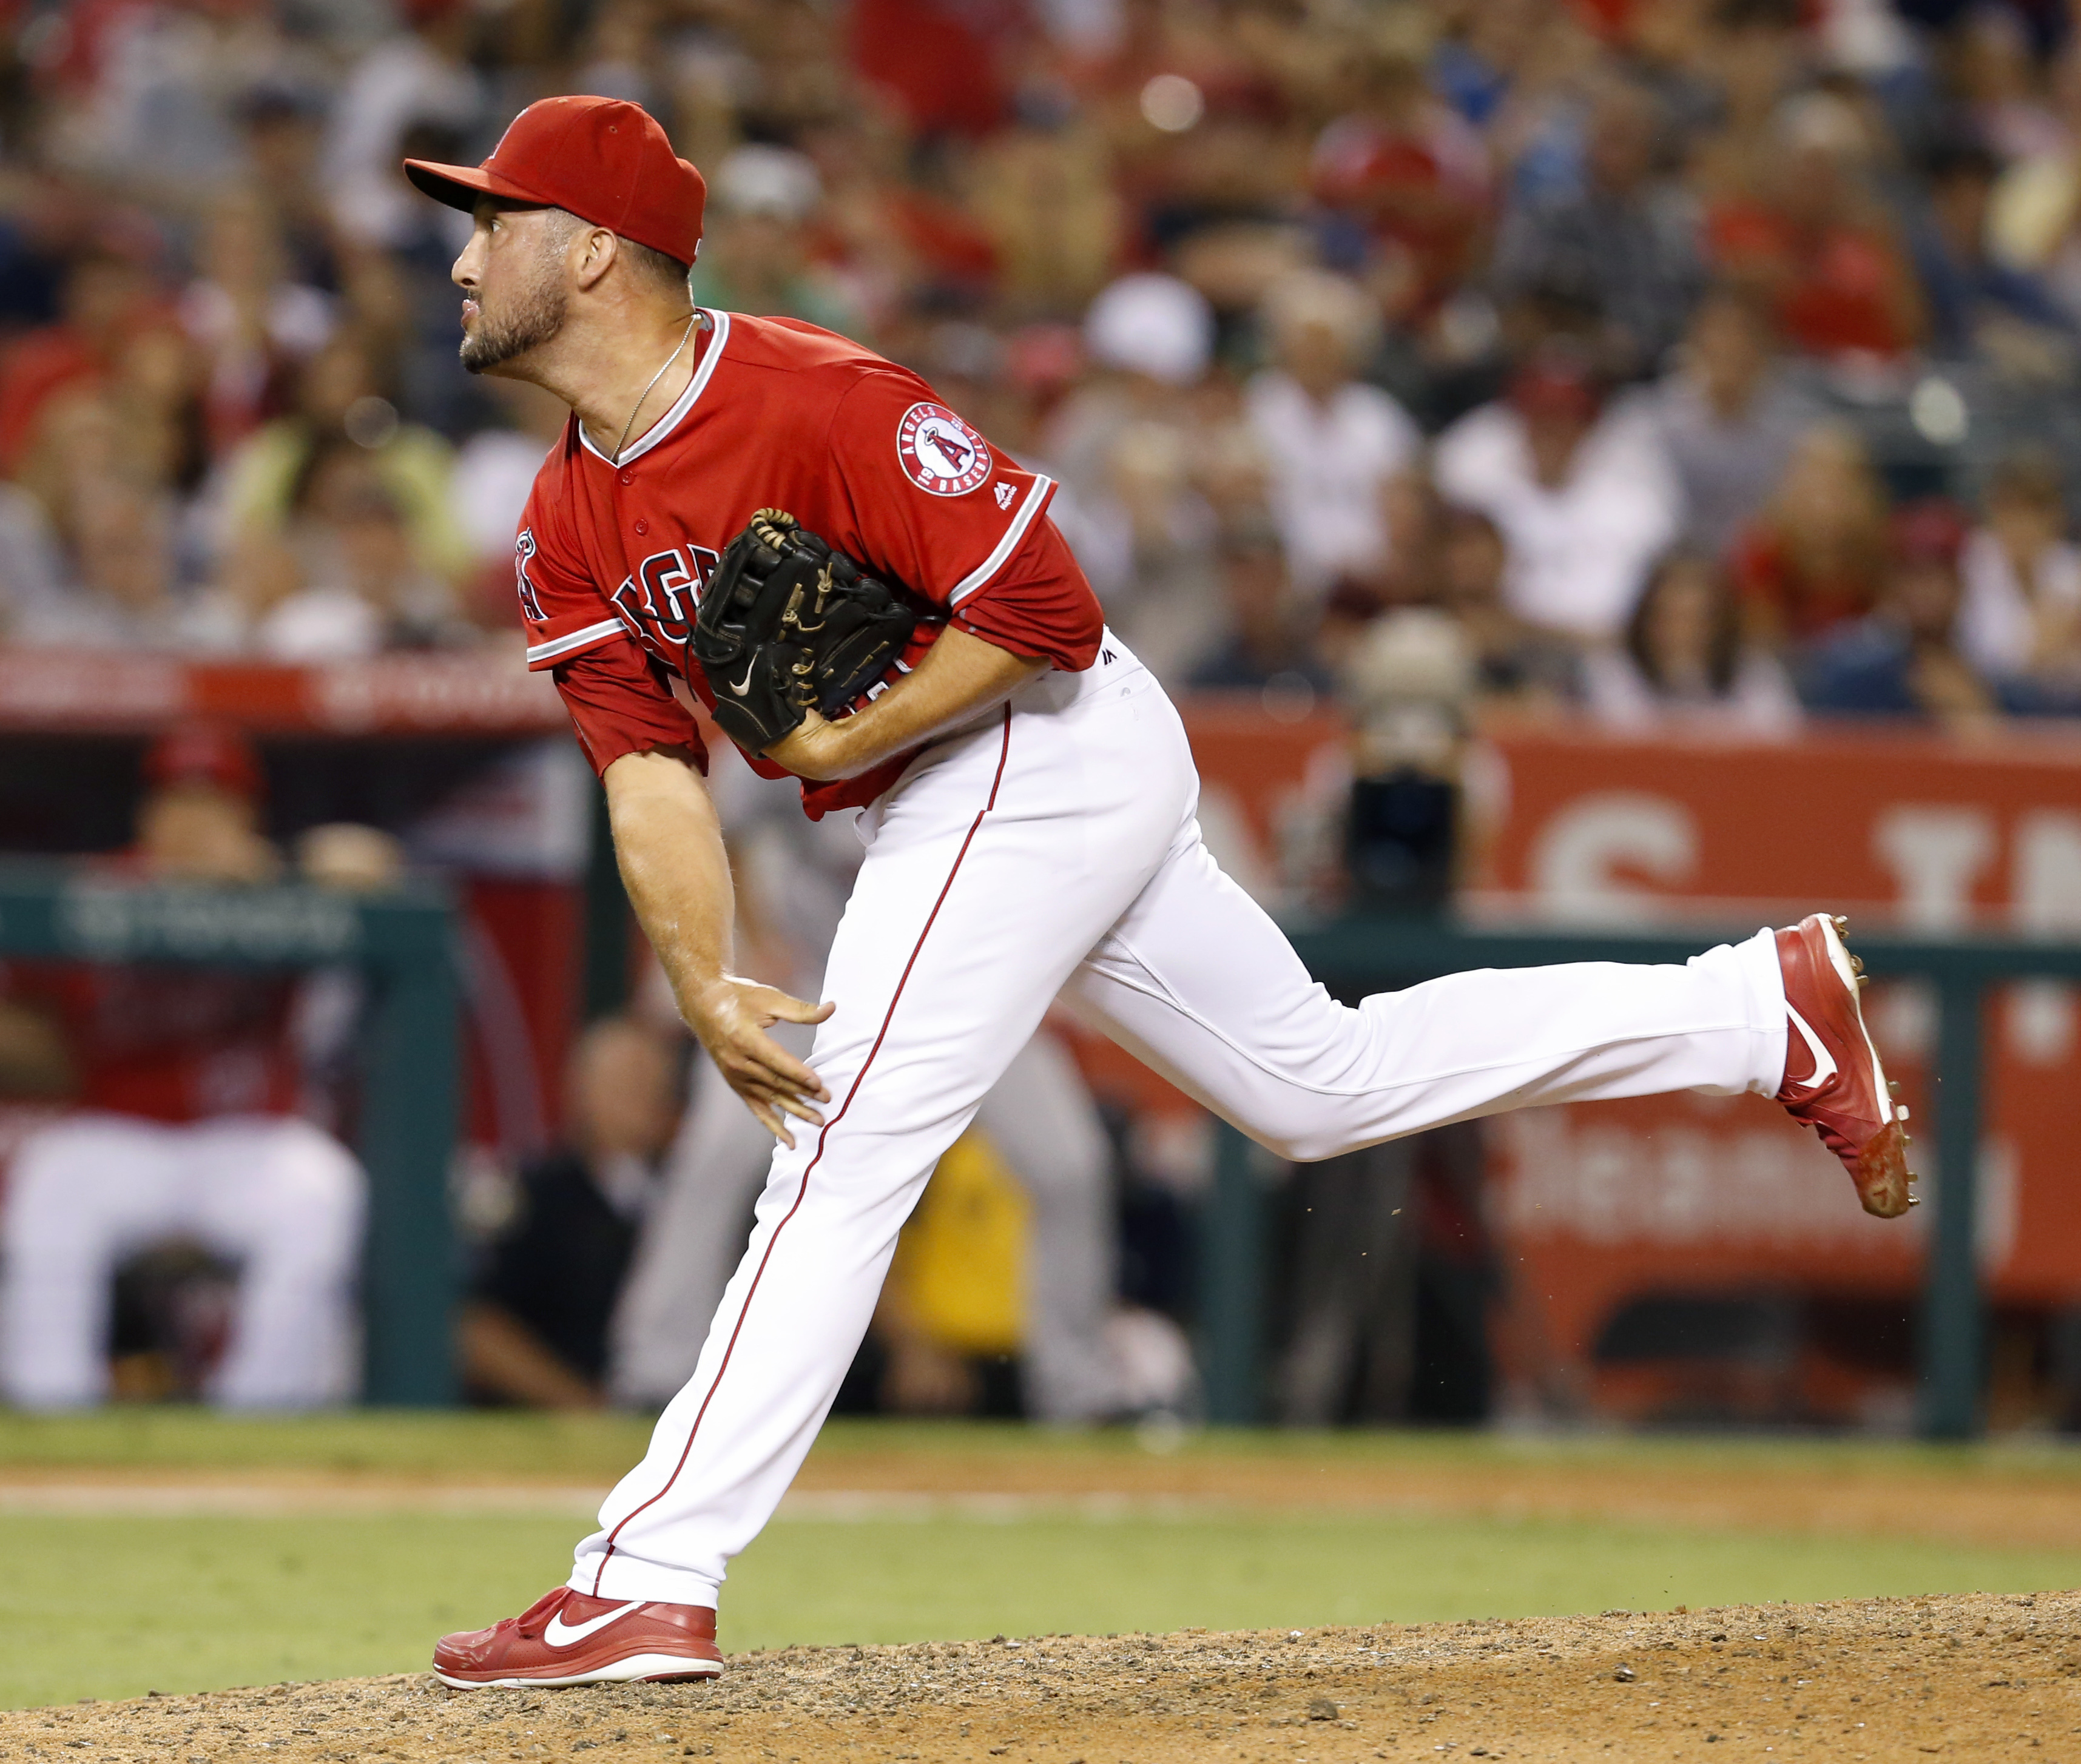 Los Angeles Angels reliever Huston Street watches a pitch during the ninth inning of a baseball game against the Boston Red Sox in Anaheim, Calif., Saturday, July 30, 2016. The Angels won 5-2. (AP Photo/Christine Cotter)